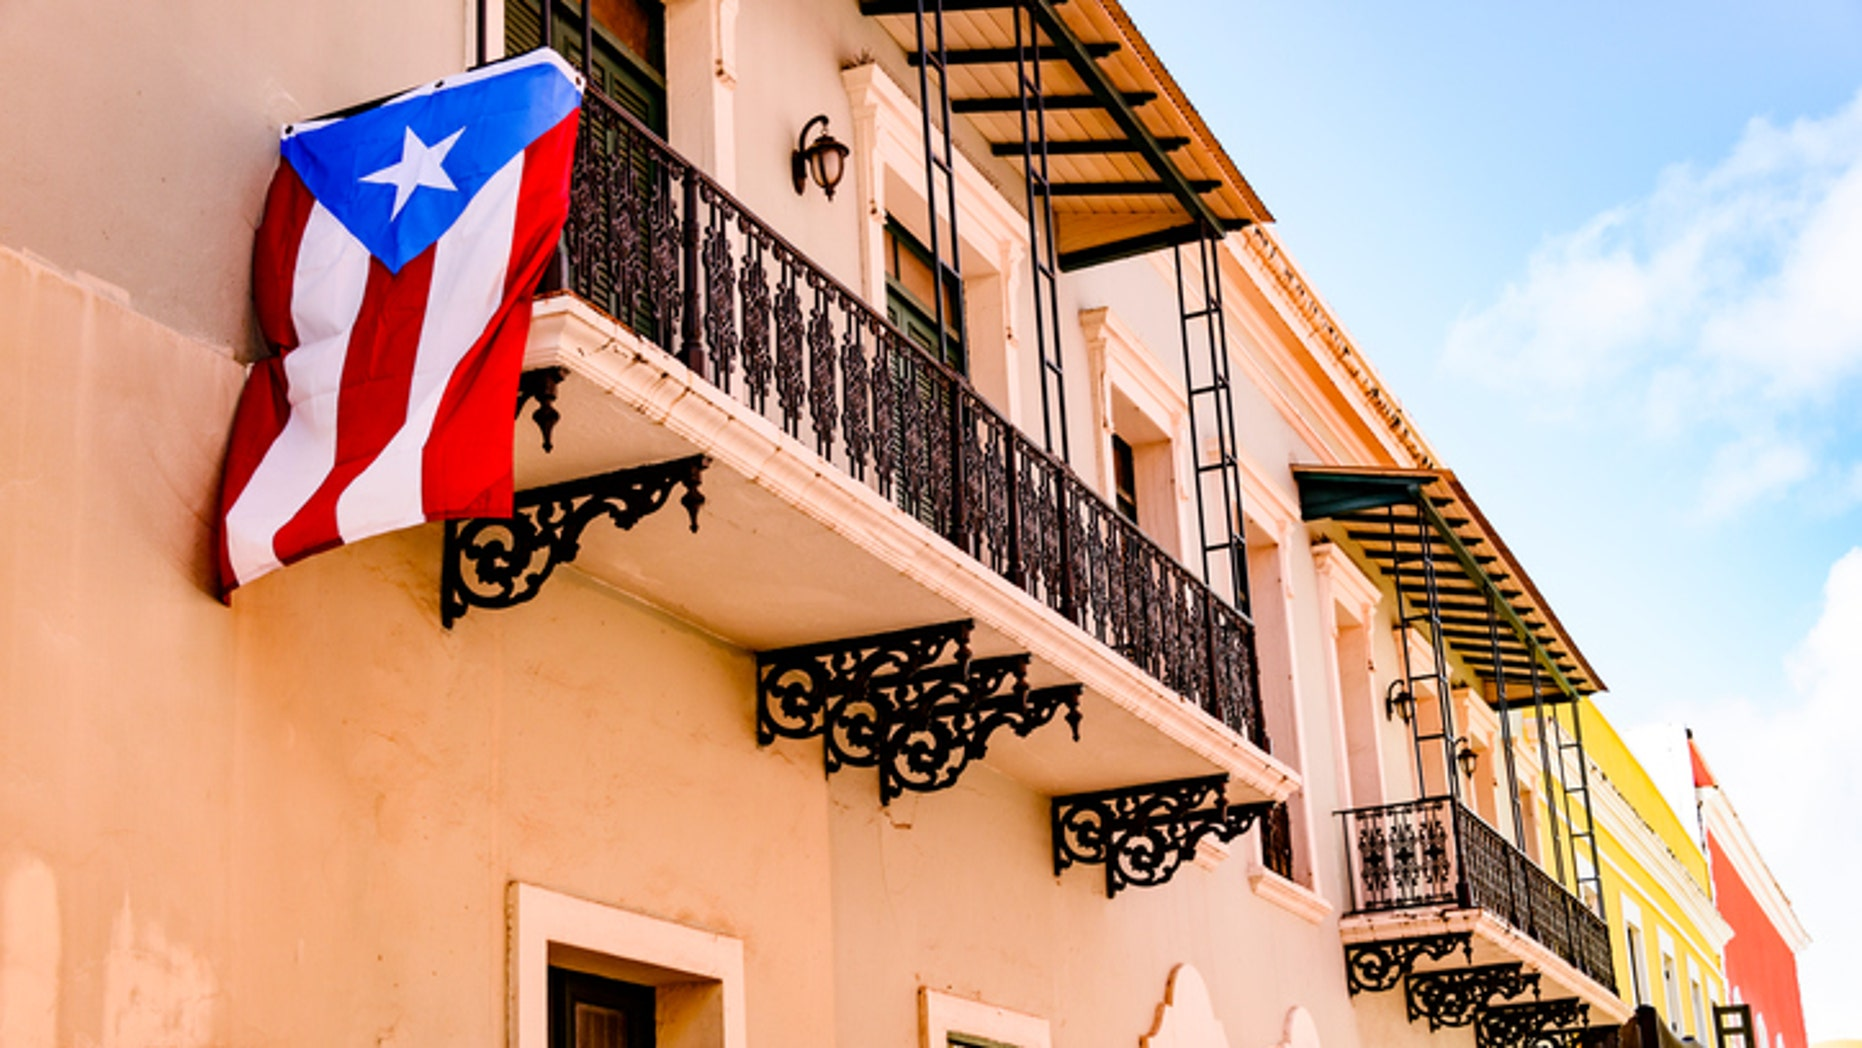 Colorful house  facades along a street in Old San Juan, Puerto Rico with a Puerto Rican flag hanging down from one of the balconies